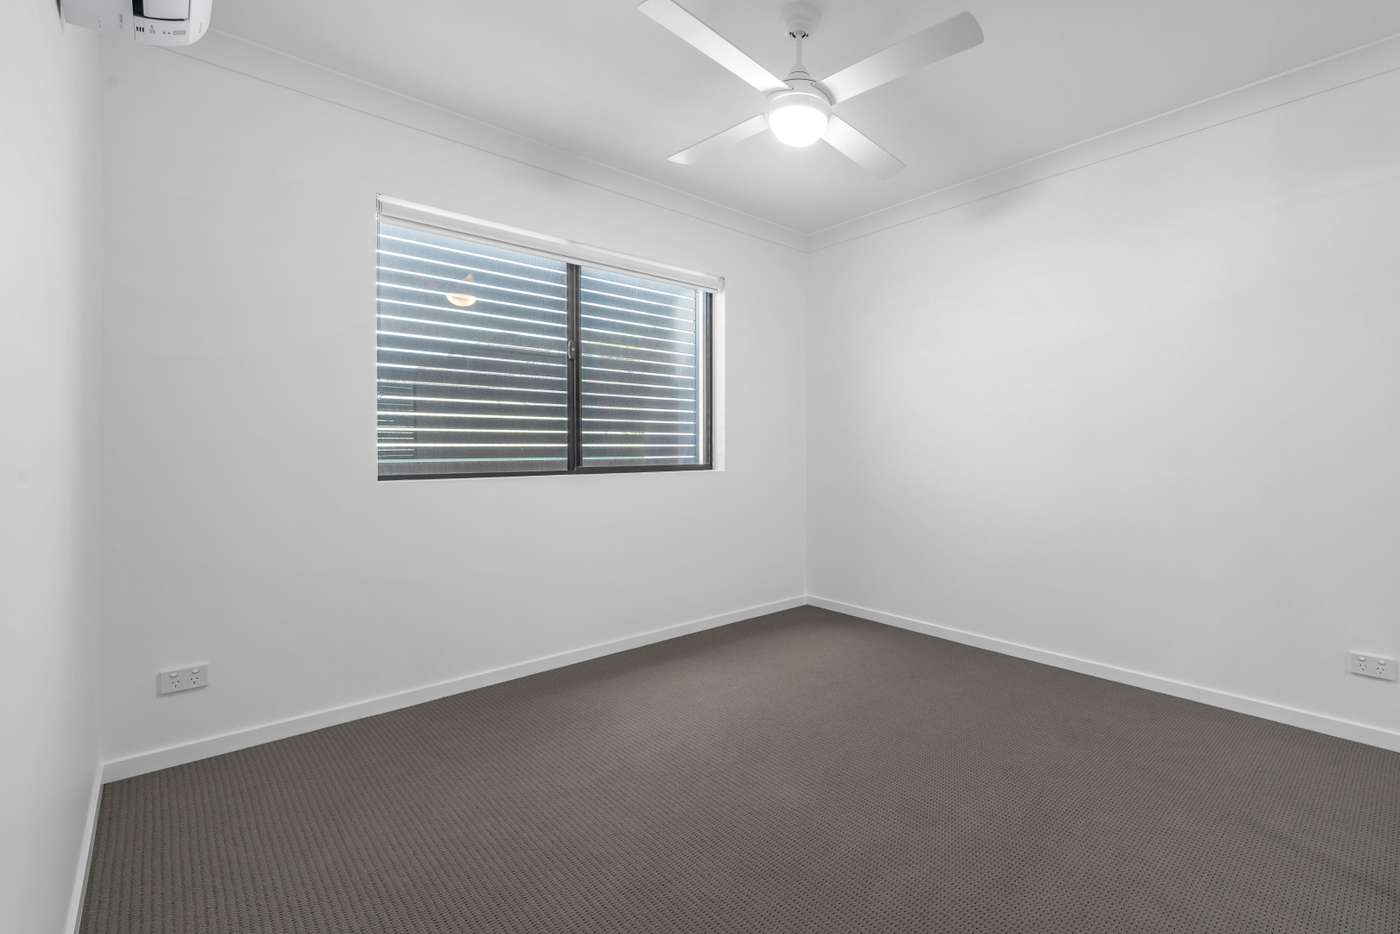 Seventh view of Homely apartment listing, 2/7 Glasgow Street, Zillmere QLD 4034